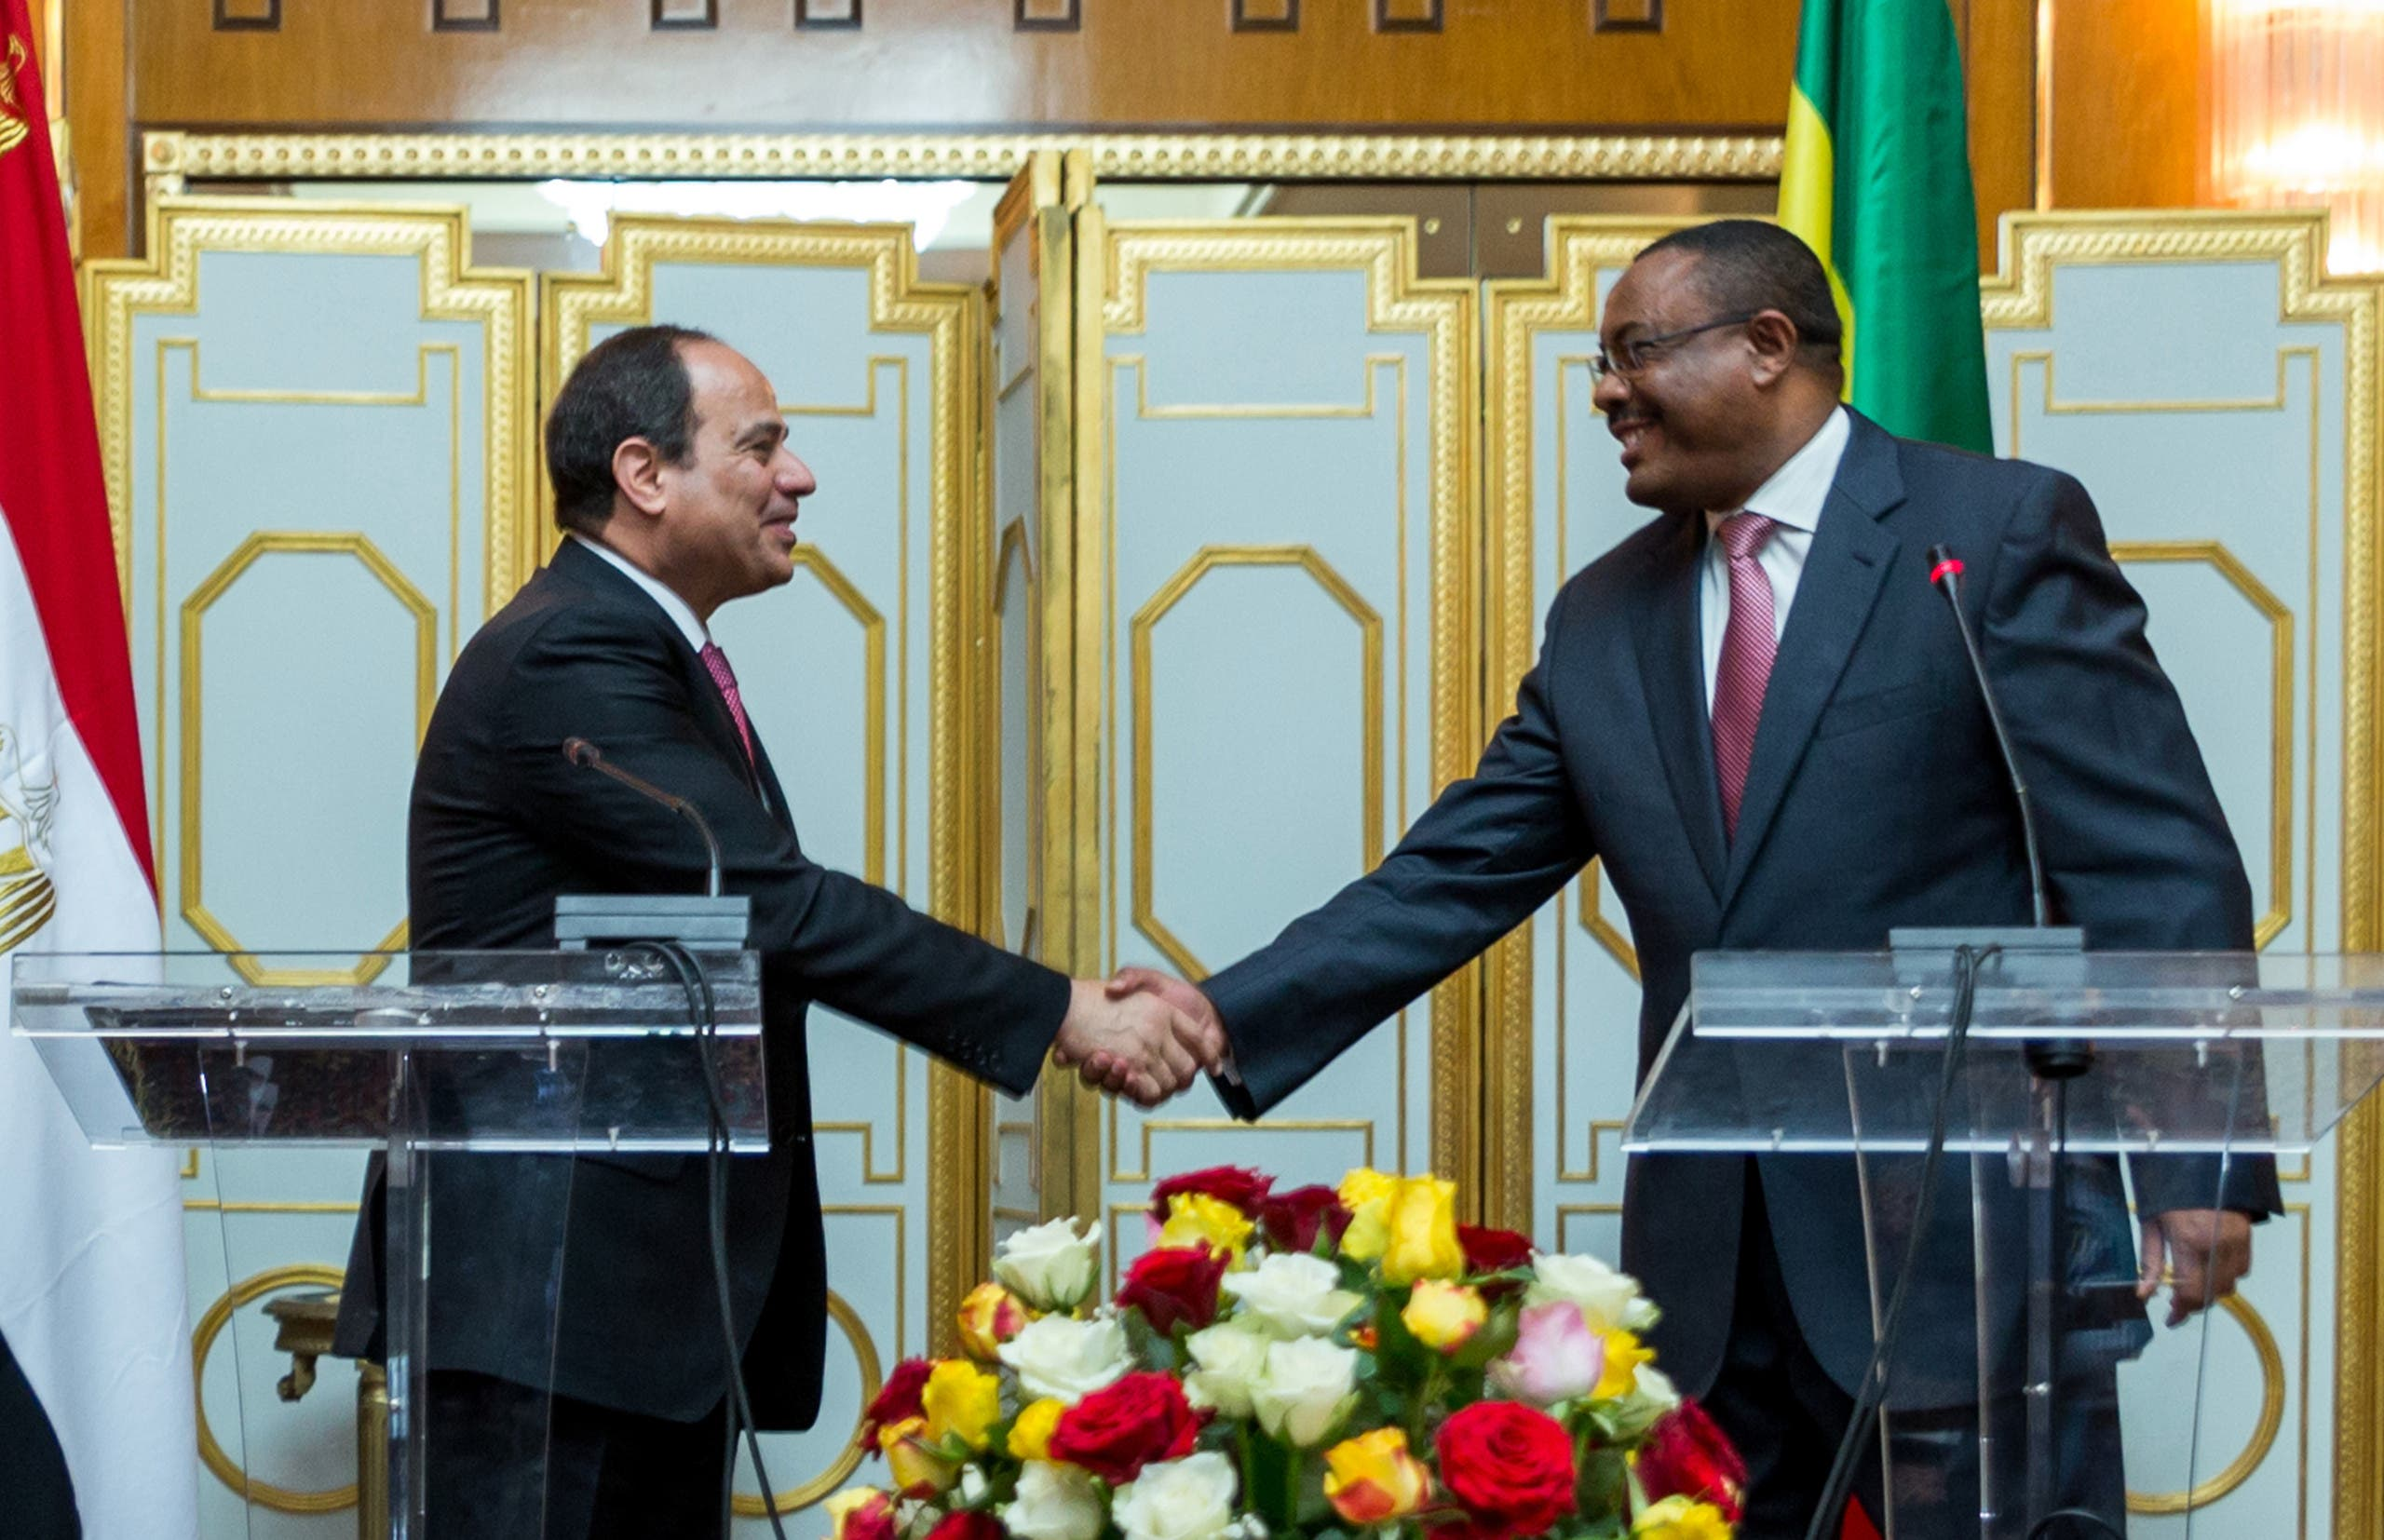 Egyptian president Fattah al-Sisi, left, and Ethiopian prime minister Hilemariam Desalegn, right, shake hands after the press conference at The National Palace Tuesday, March 24, 2015 in Addis Ababa Ethiopia. (Reuters)